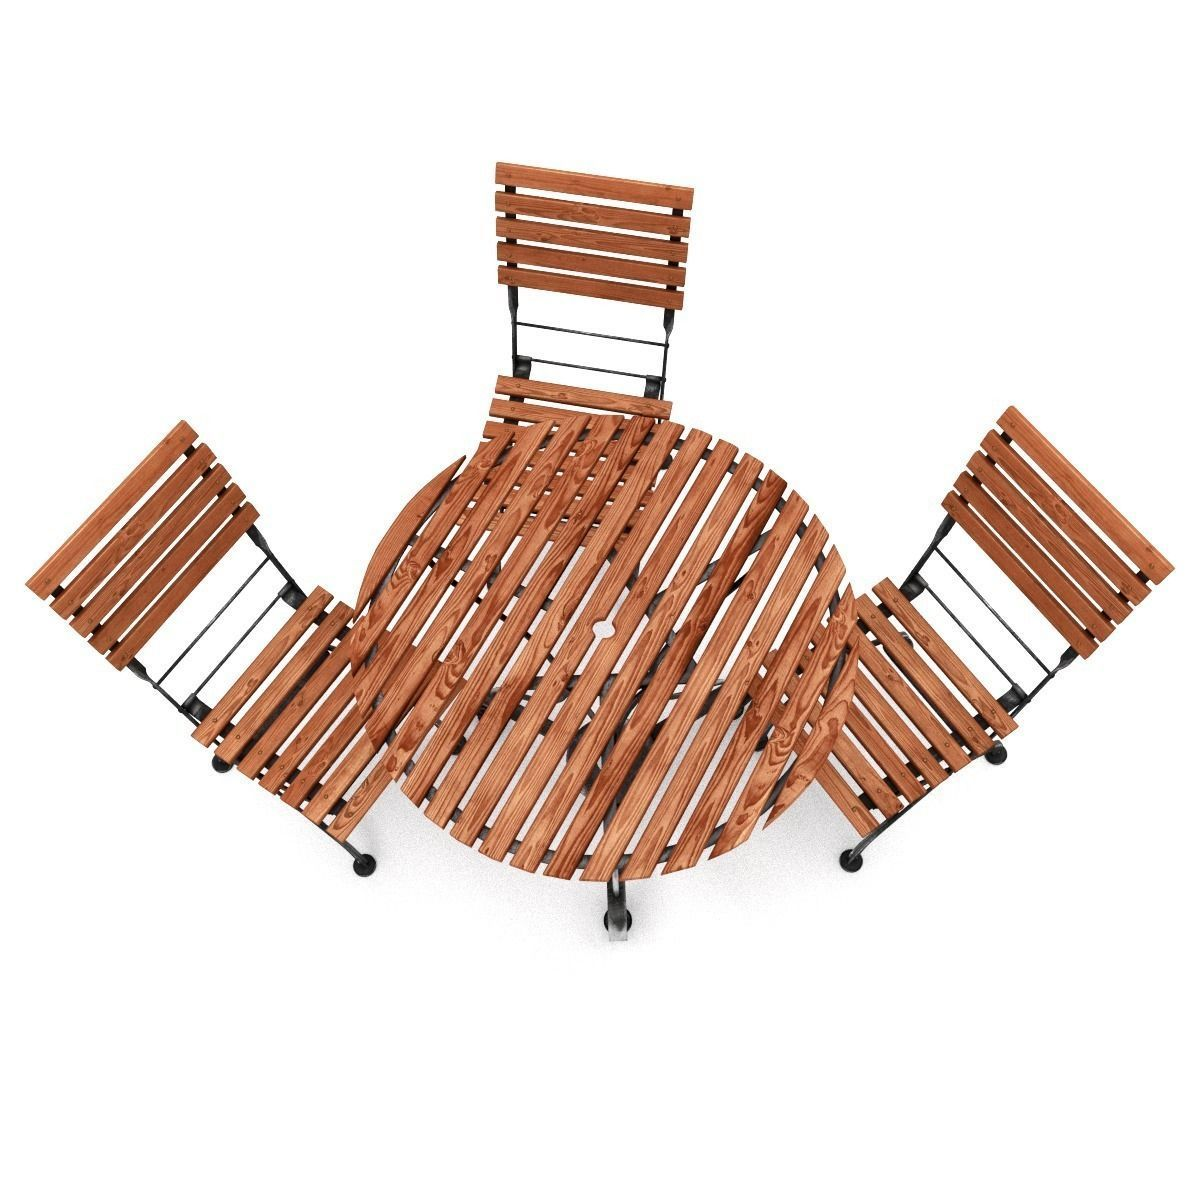 garden furniture set 3d model obj fbx blend 2 - Garden Furniture Top View